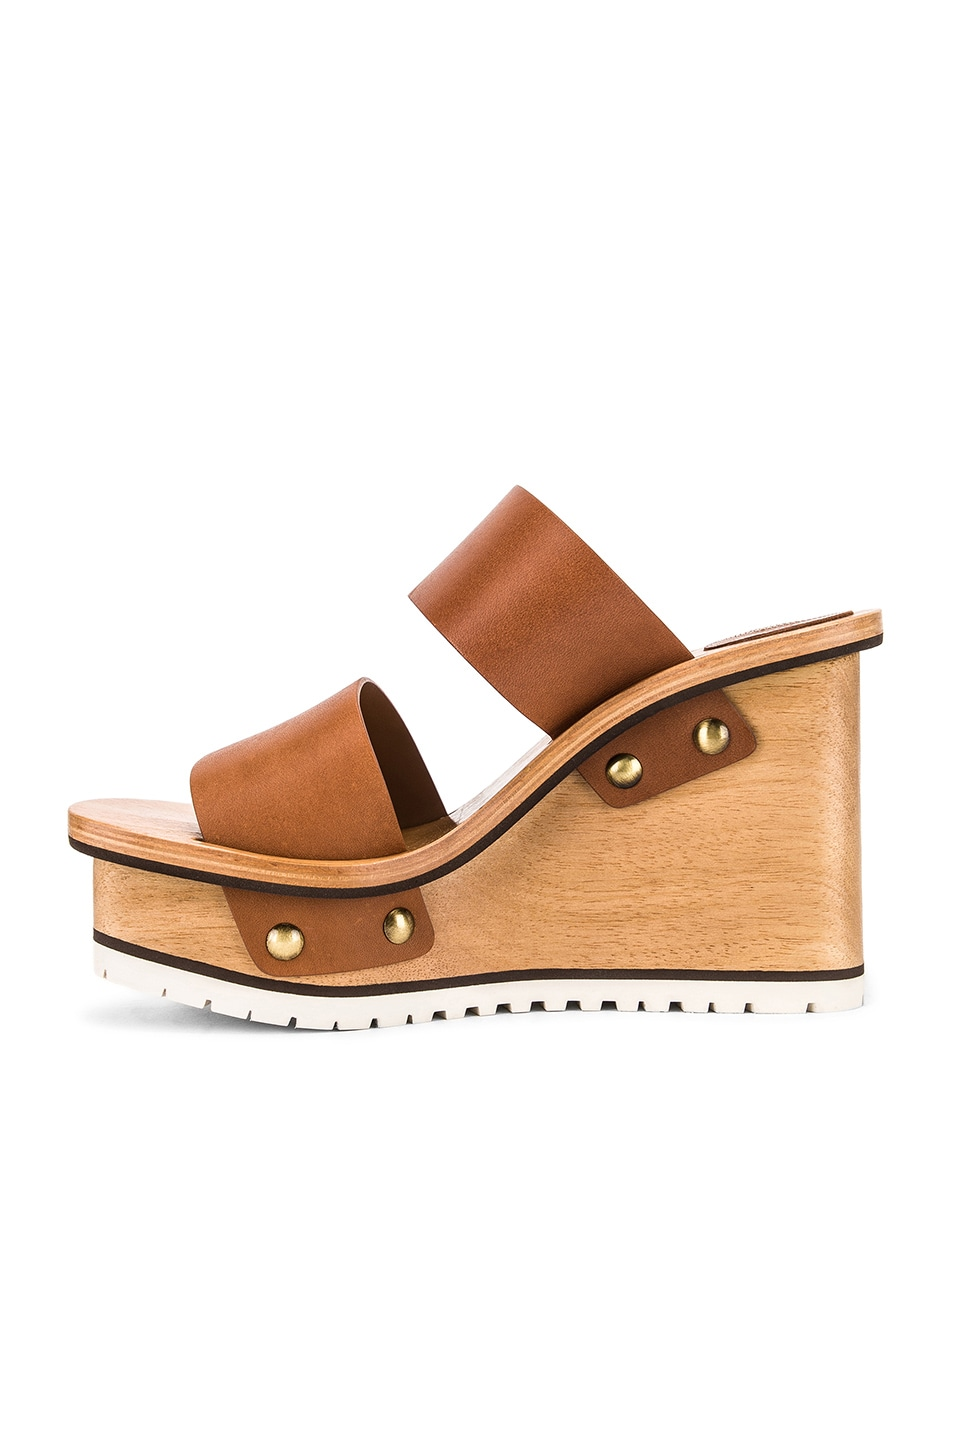 Image 5 of Chloe Two Strap Wedge in Woody Beige